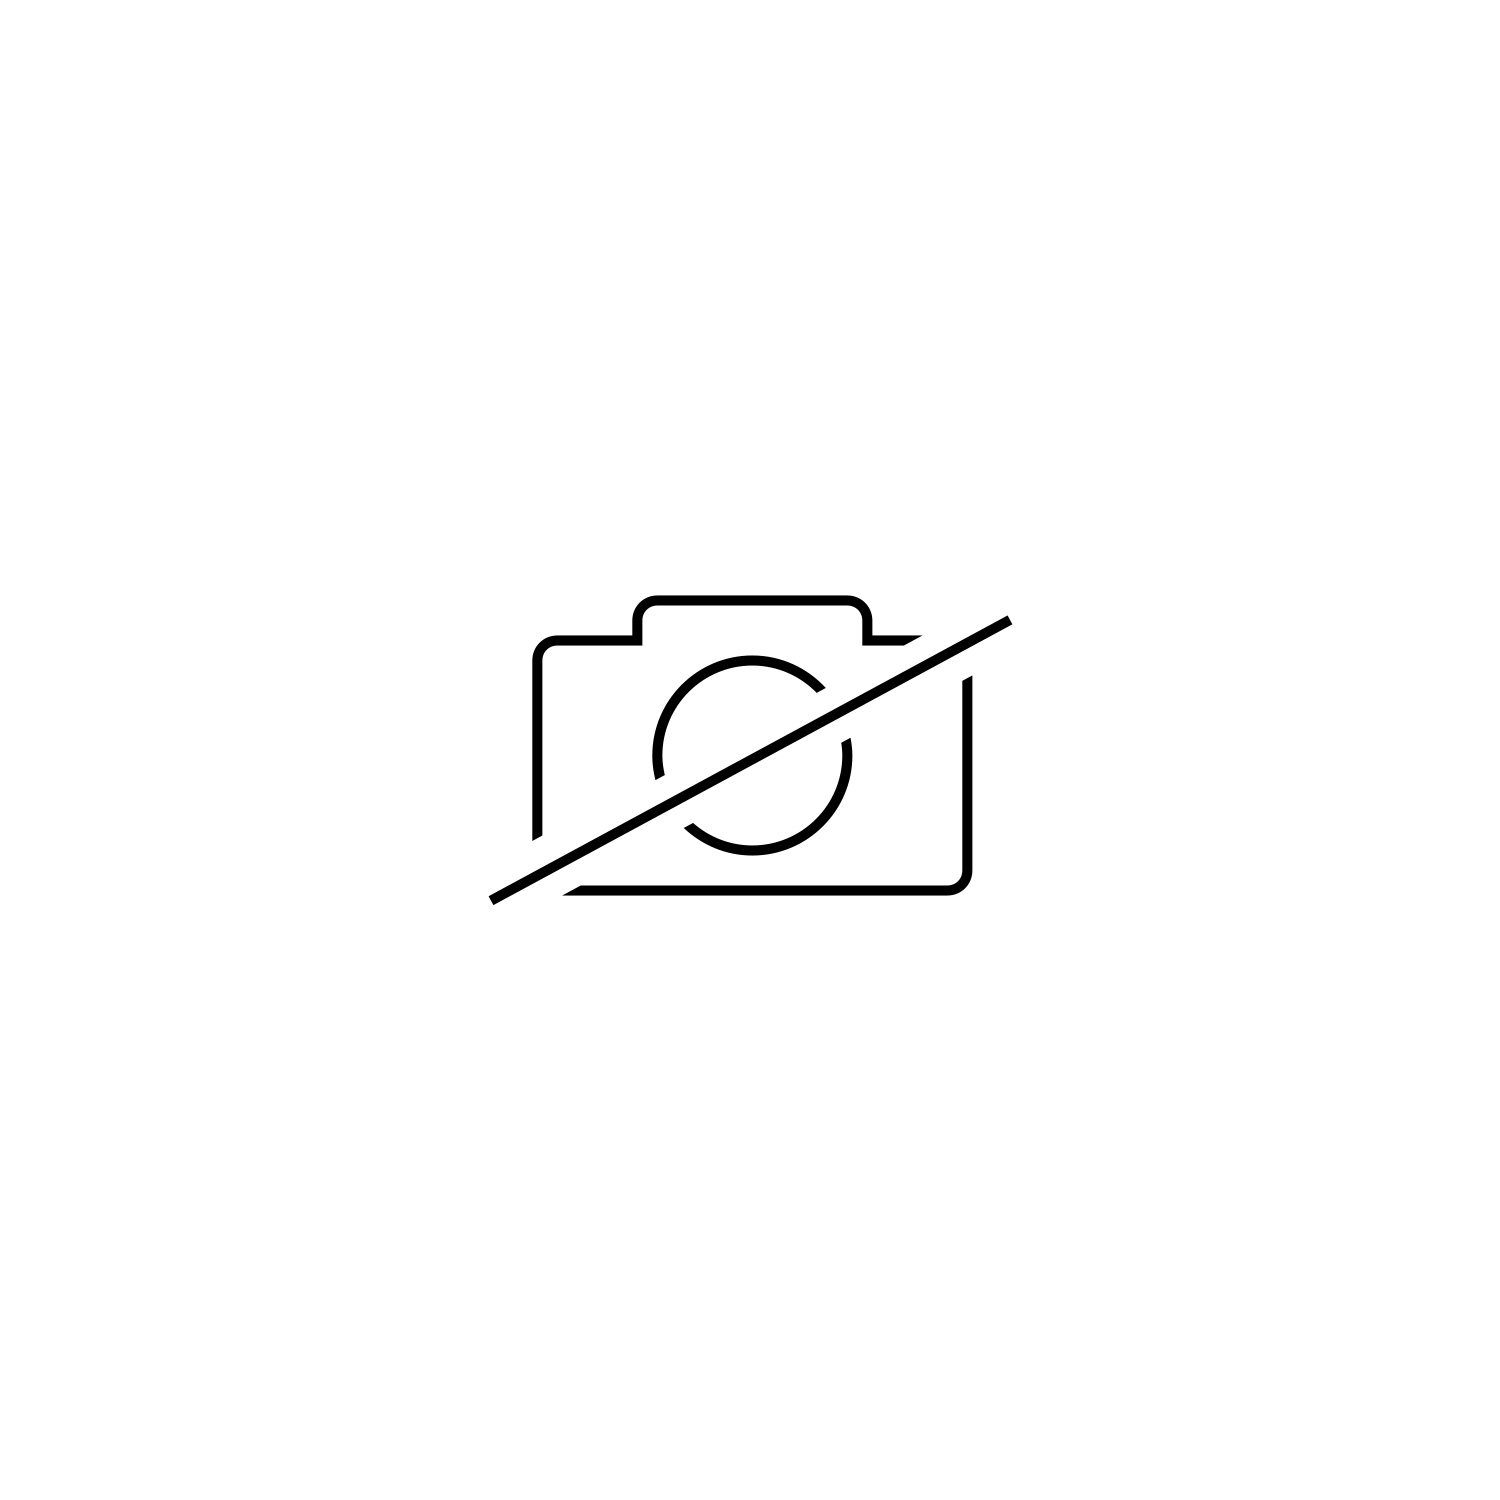 quattro T-Shirt, Mens, Light grey, S